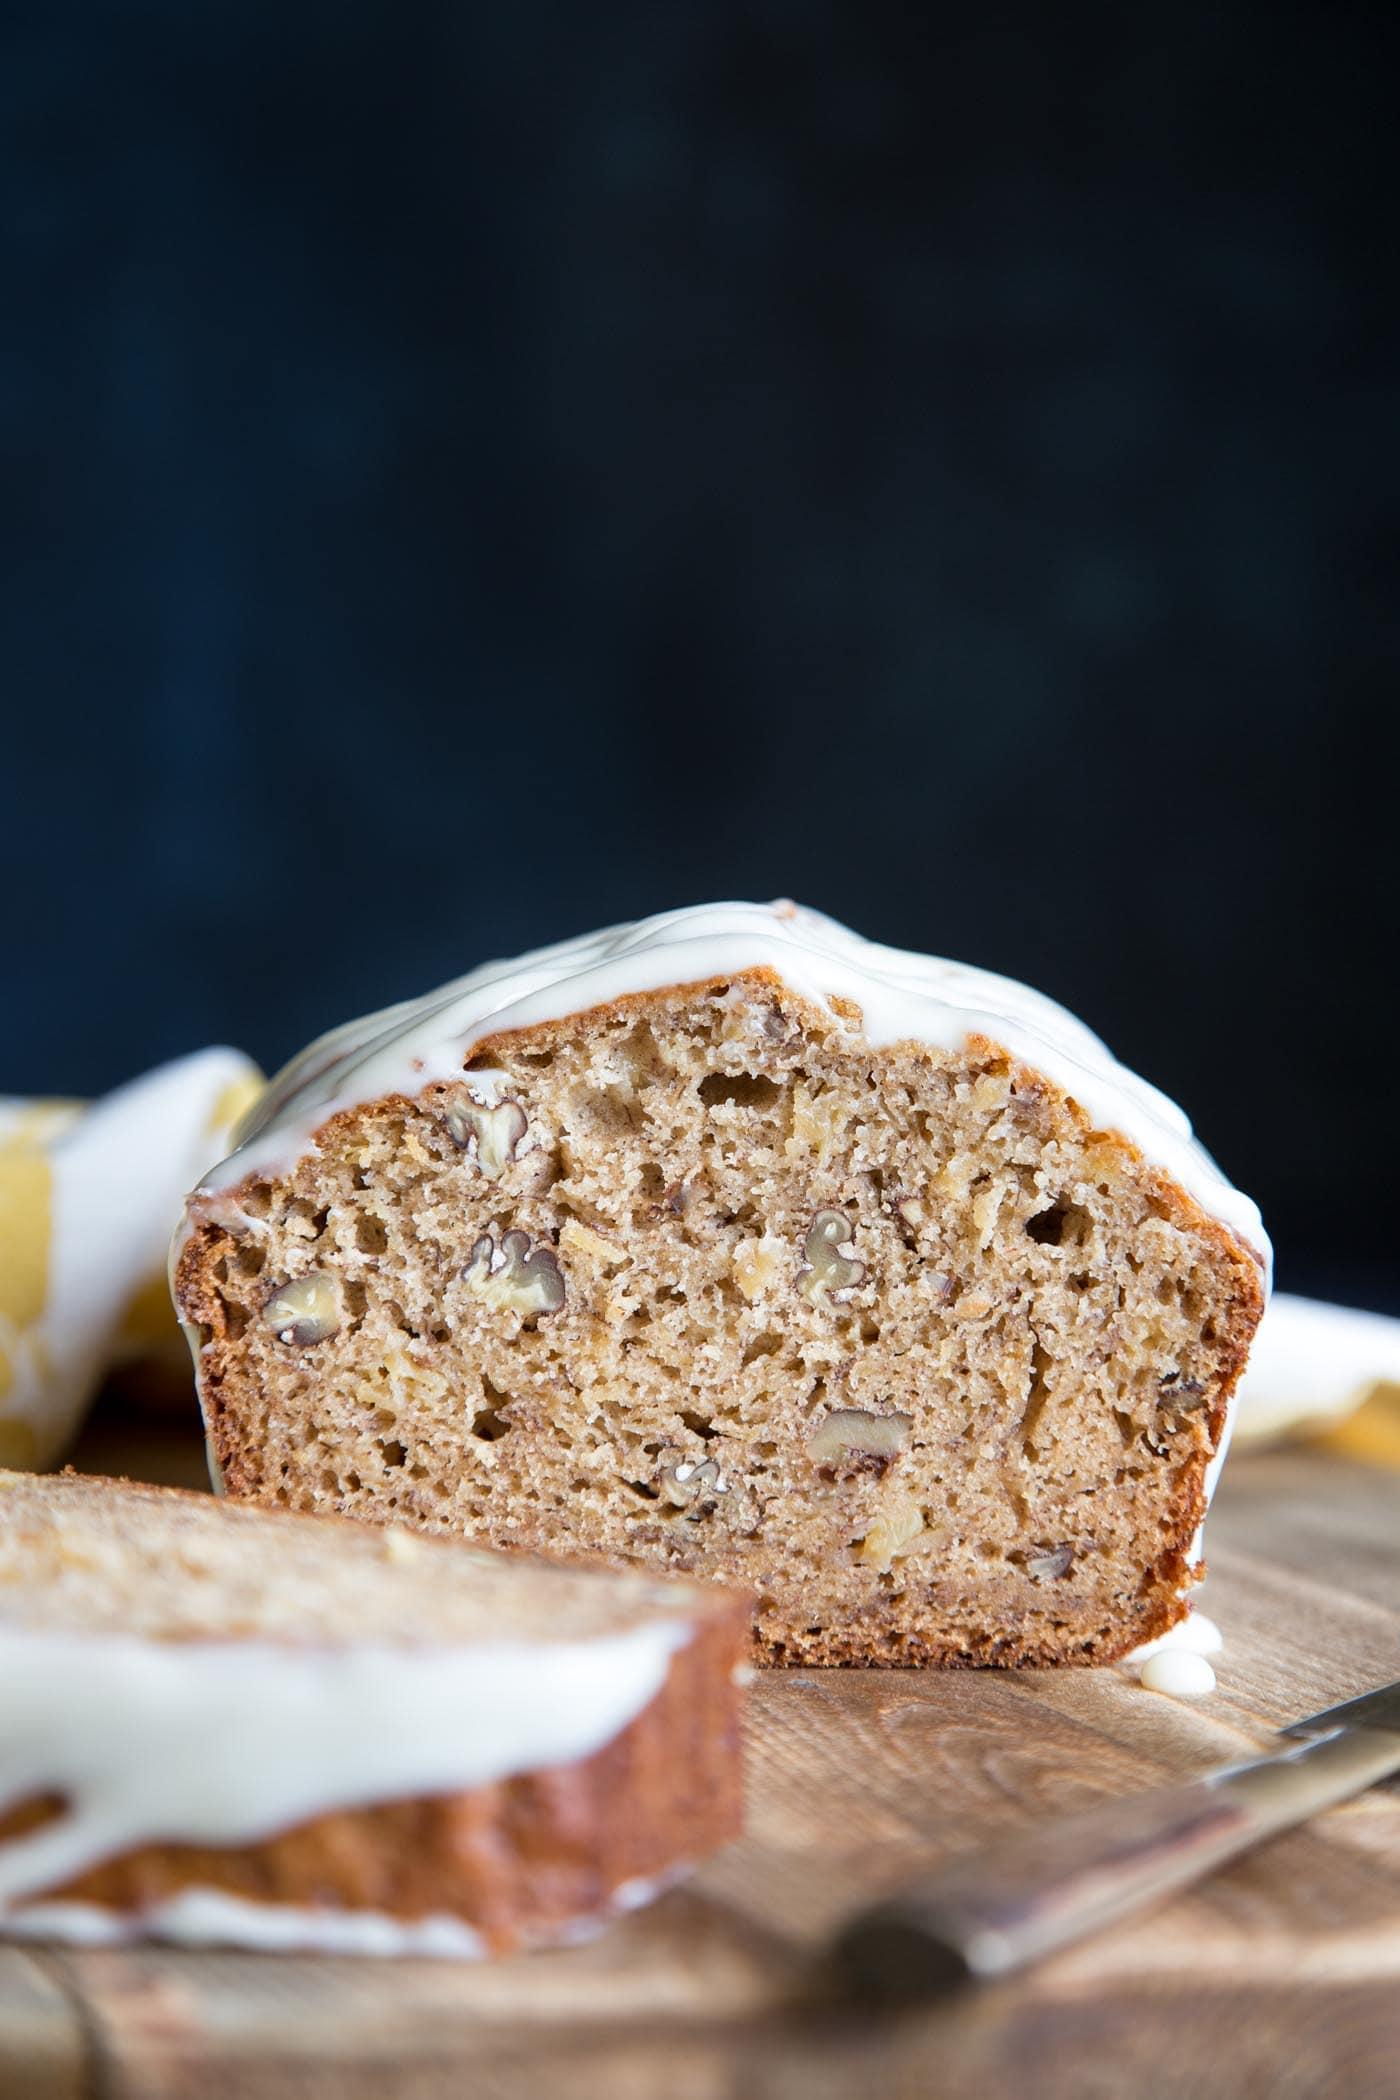 Cross section of hummingbird cake banana bread